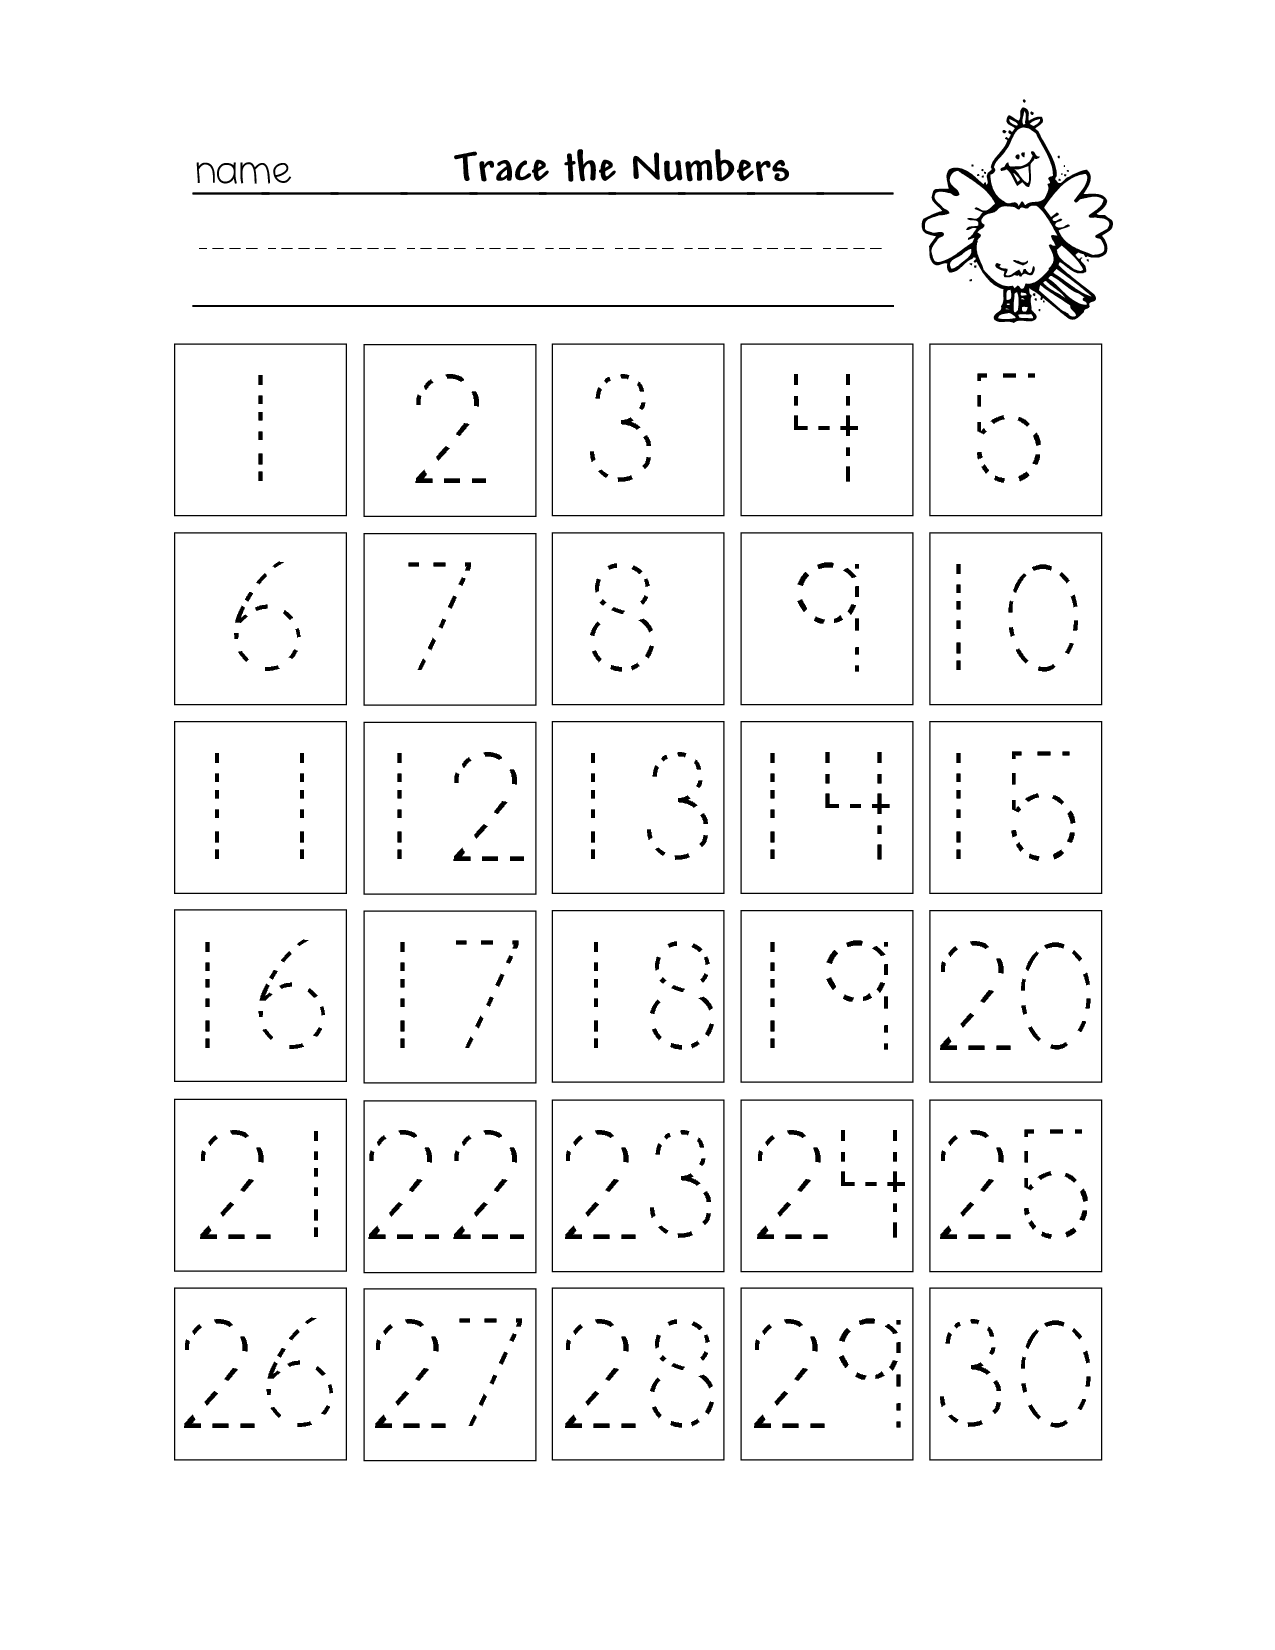 4 Images of Free Printable Traceable Numbers